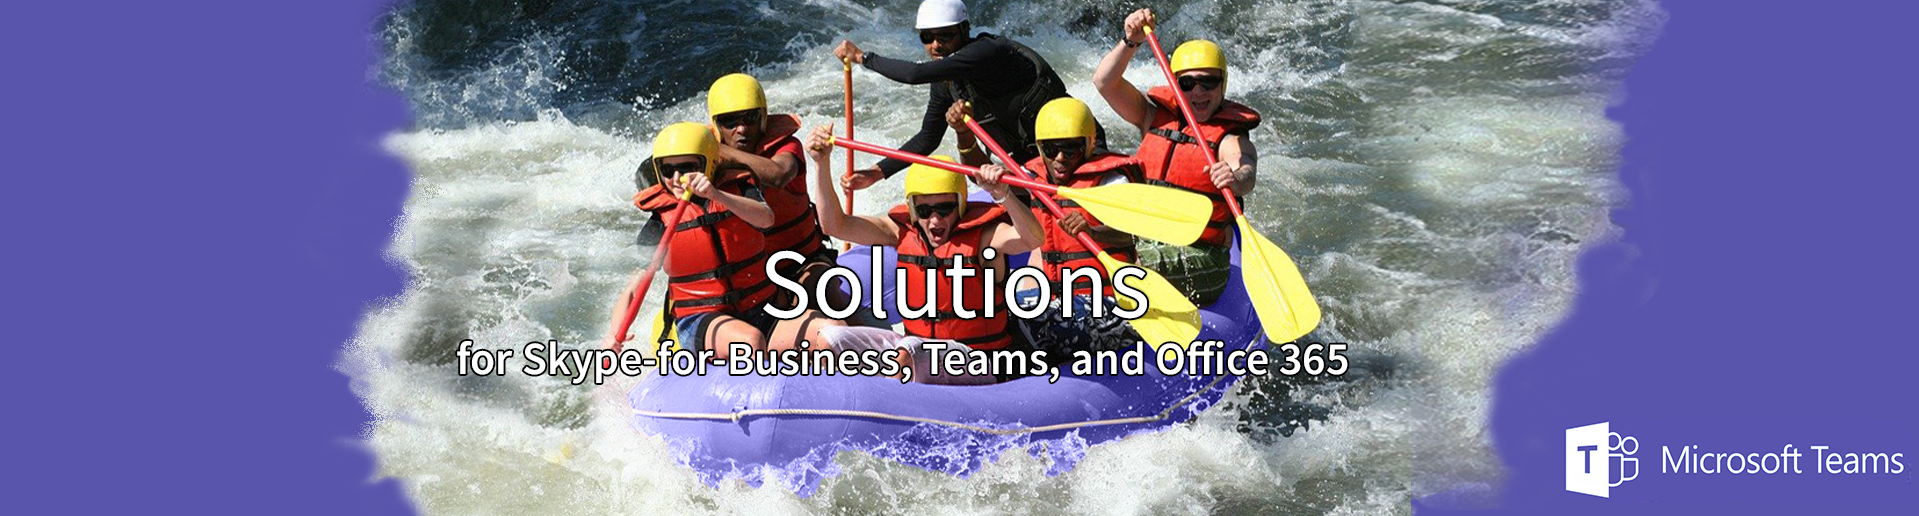 Microsoft Teams Solutions